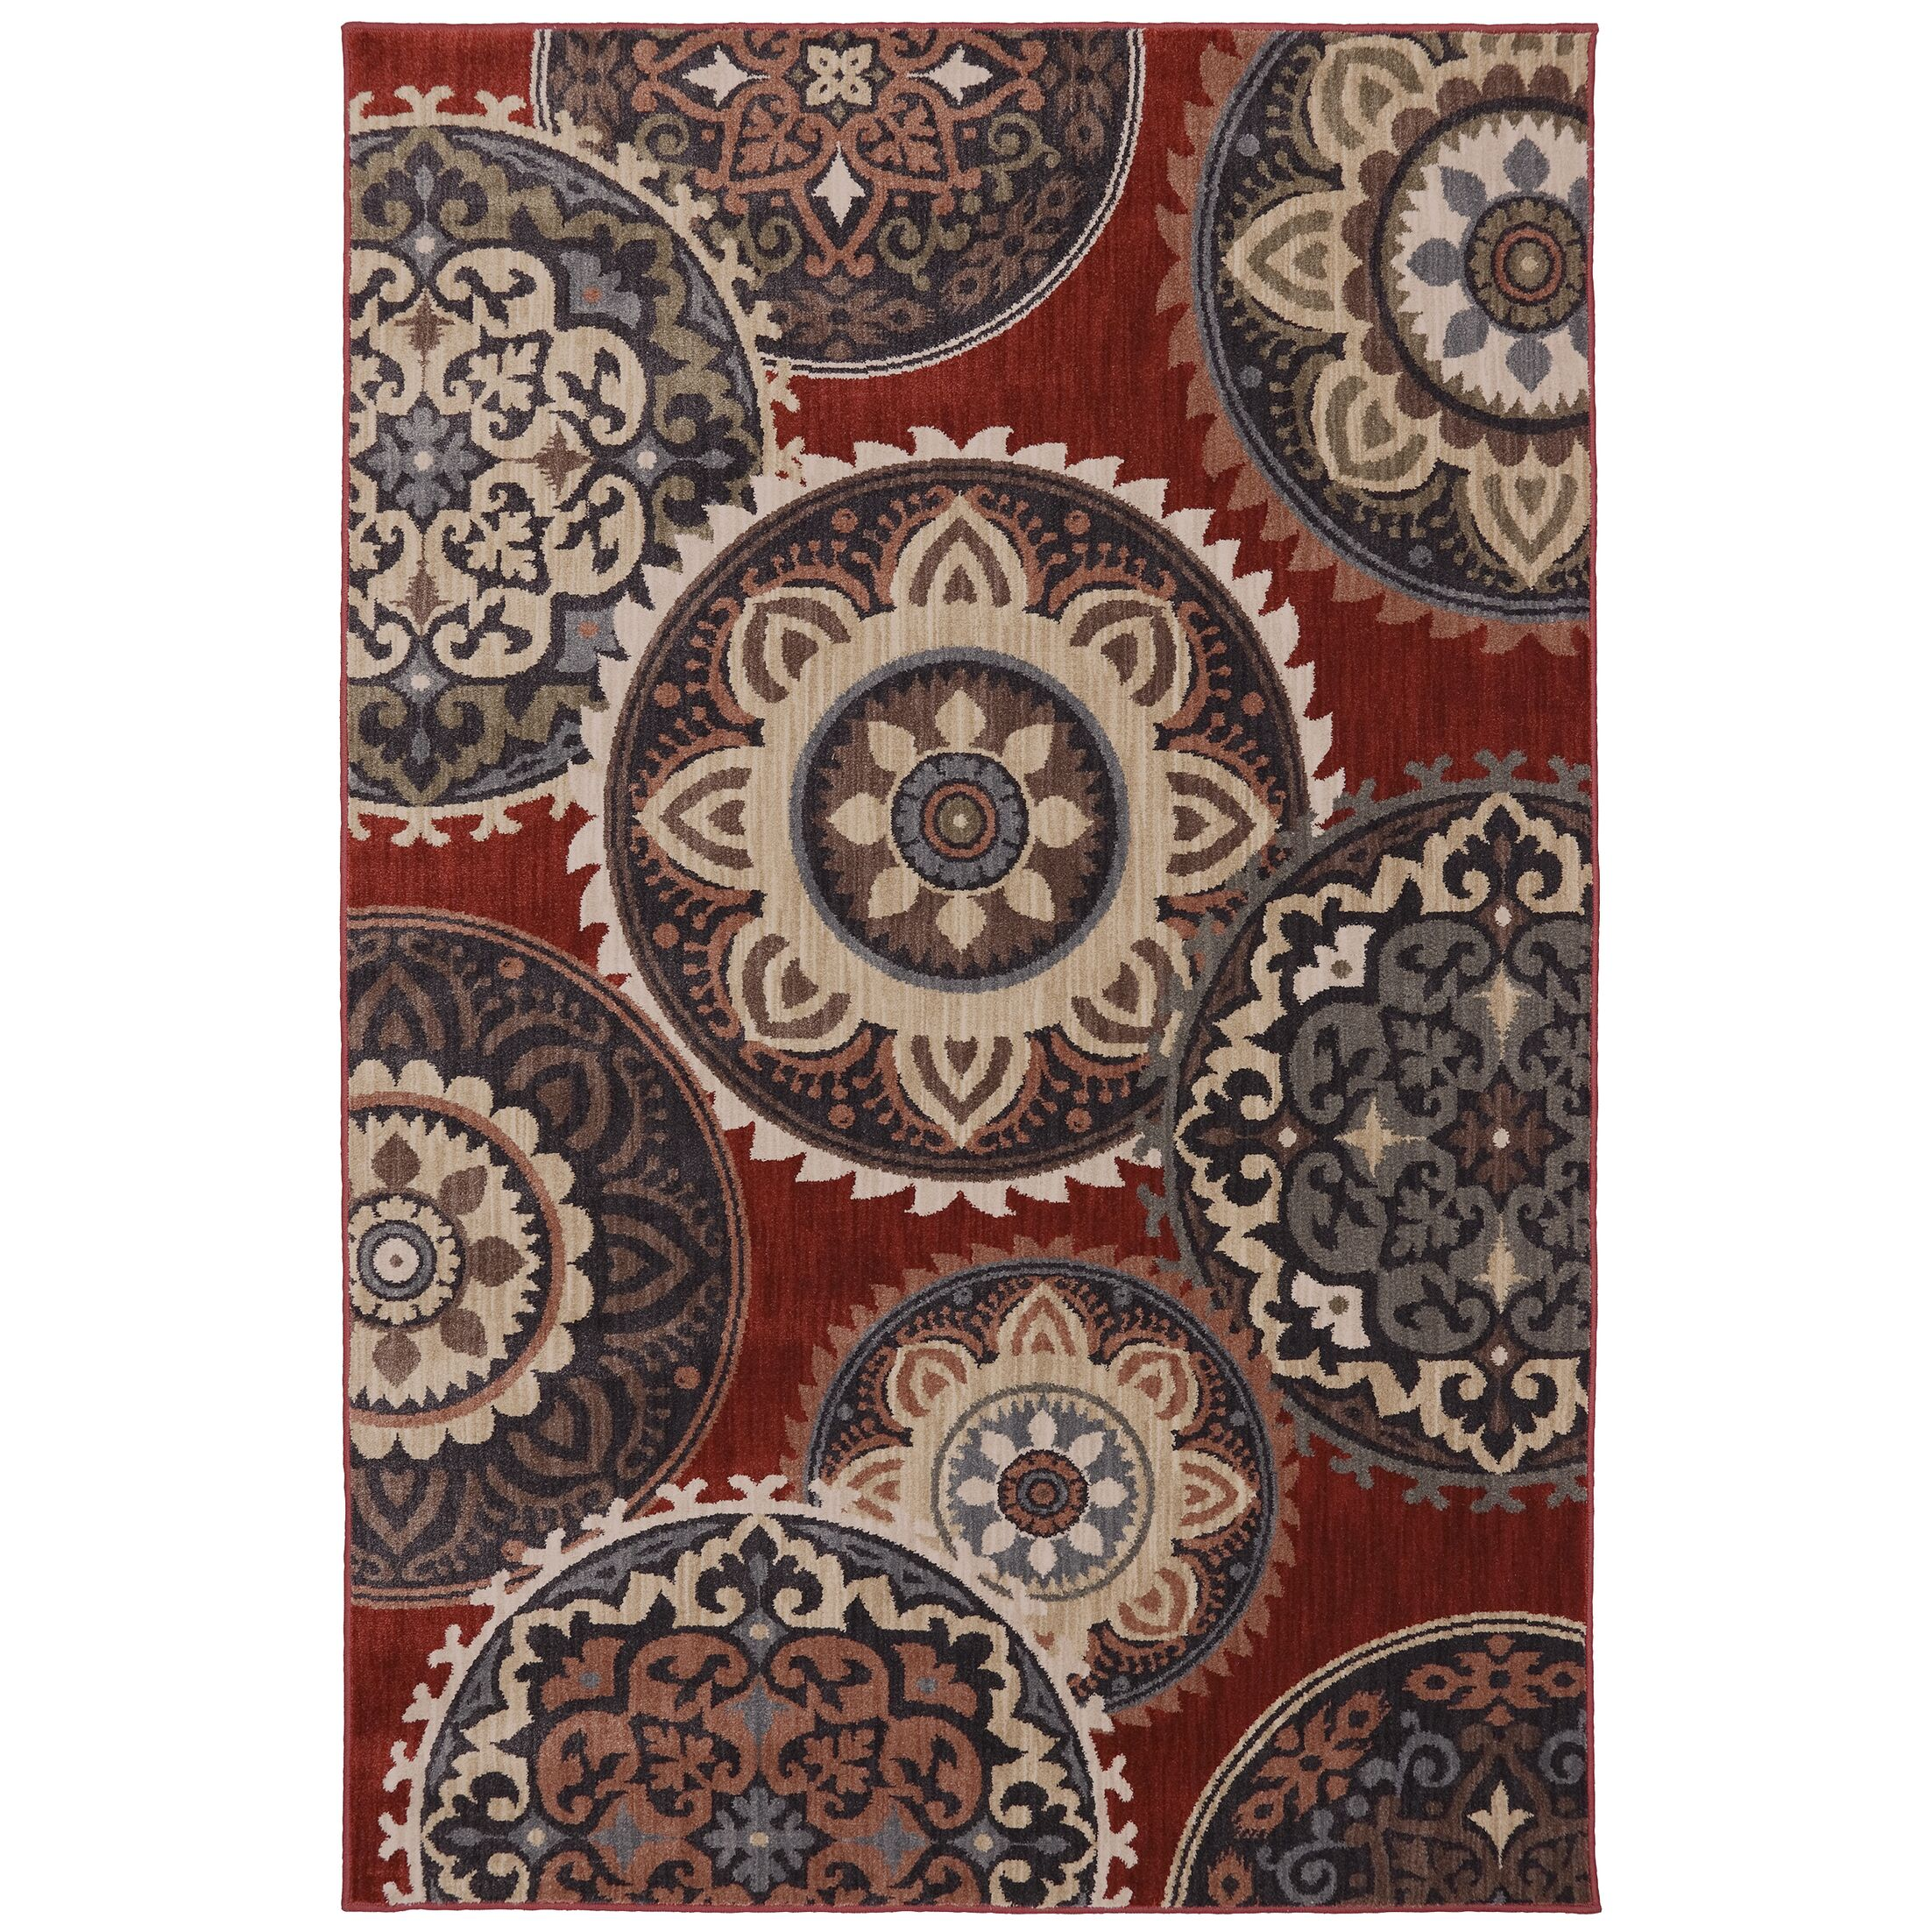 Dryden Summit View Ashen Ornamental Rug Rug Size: Rectangle 9'6